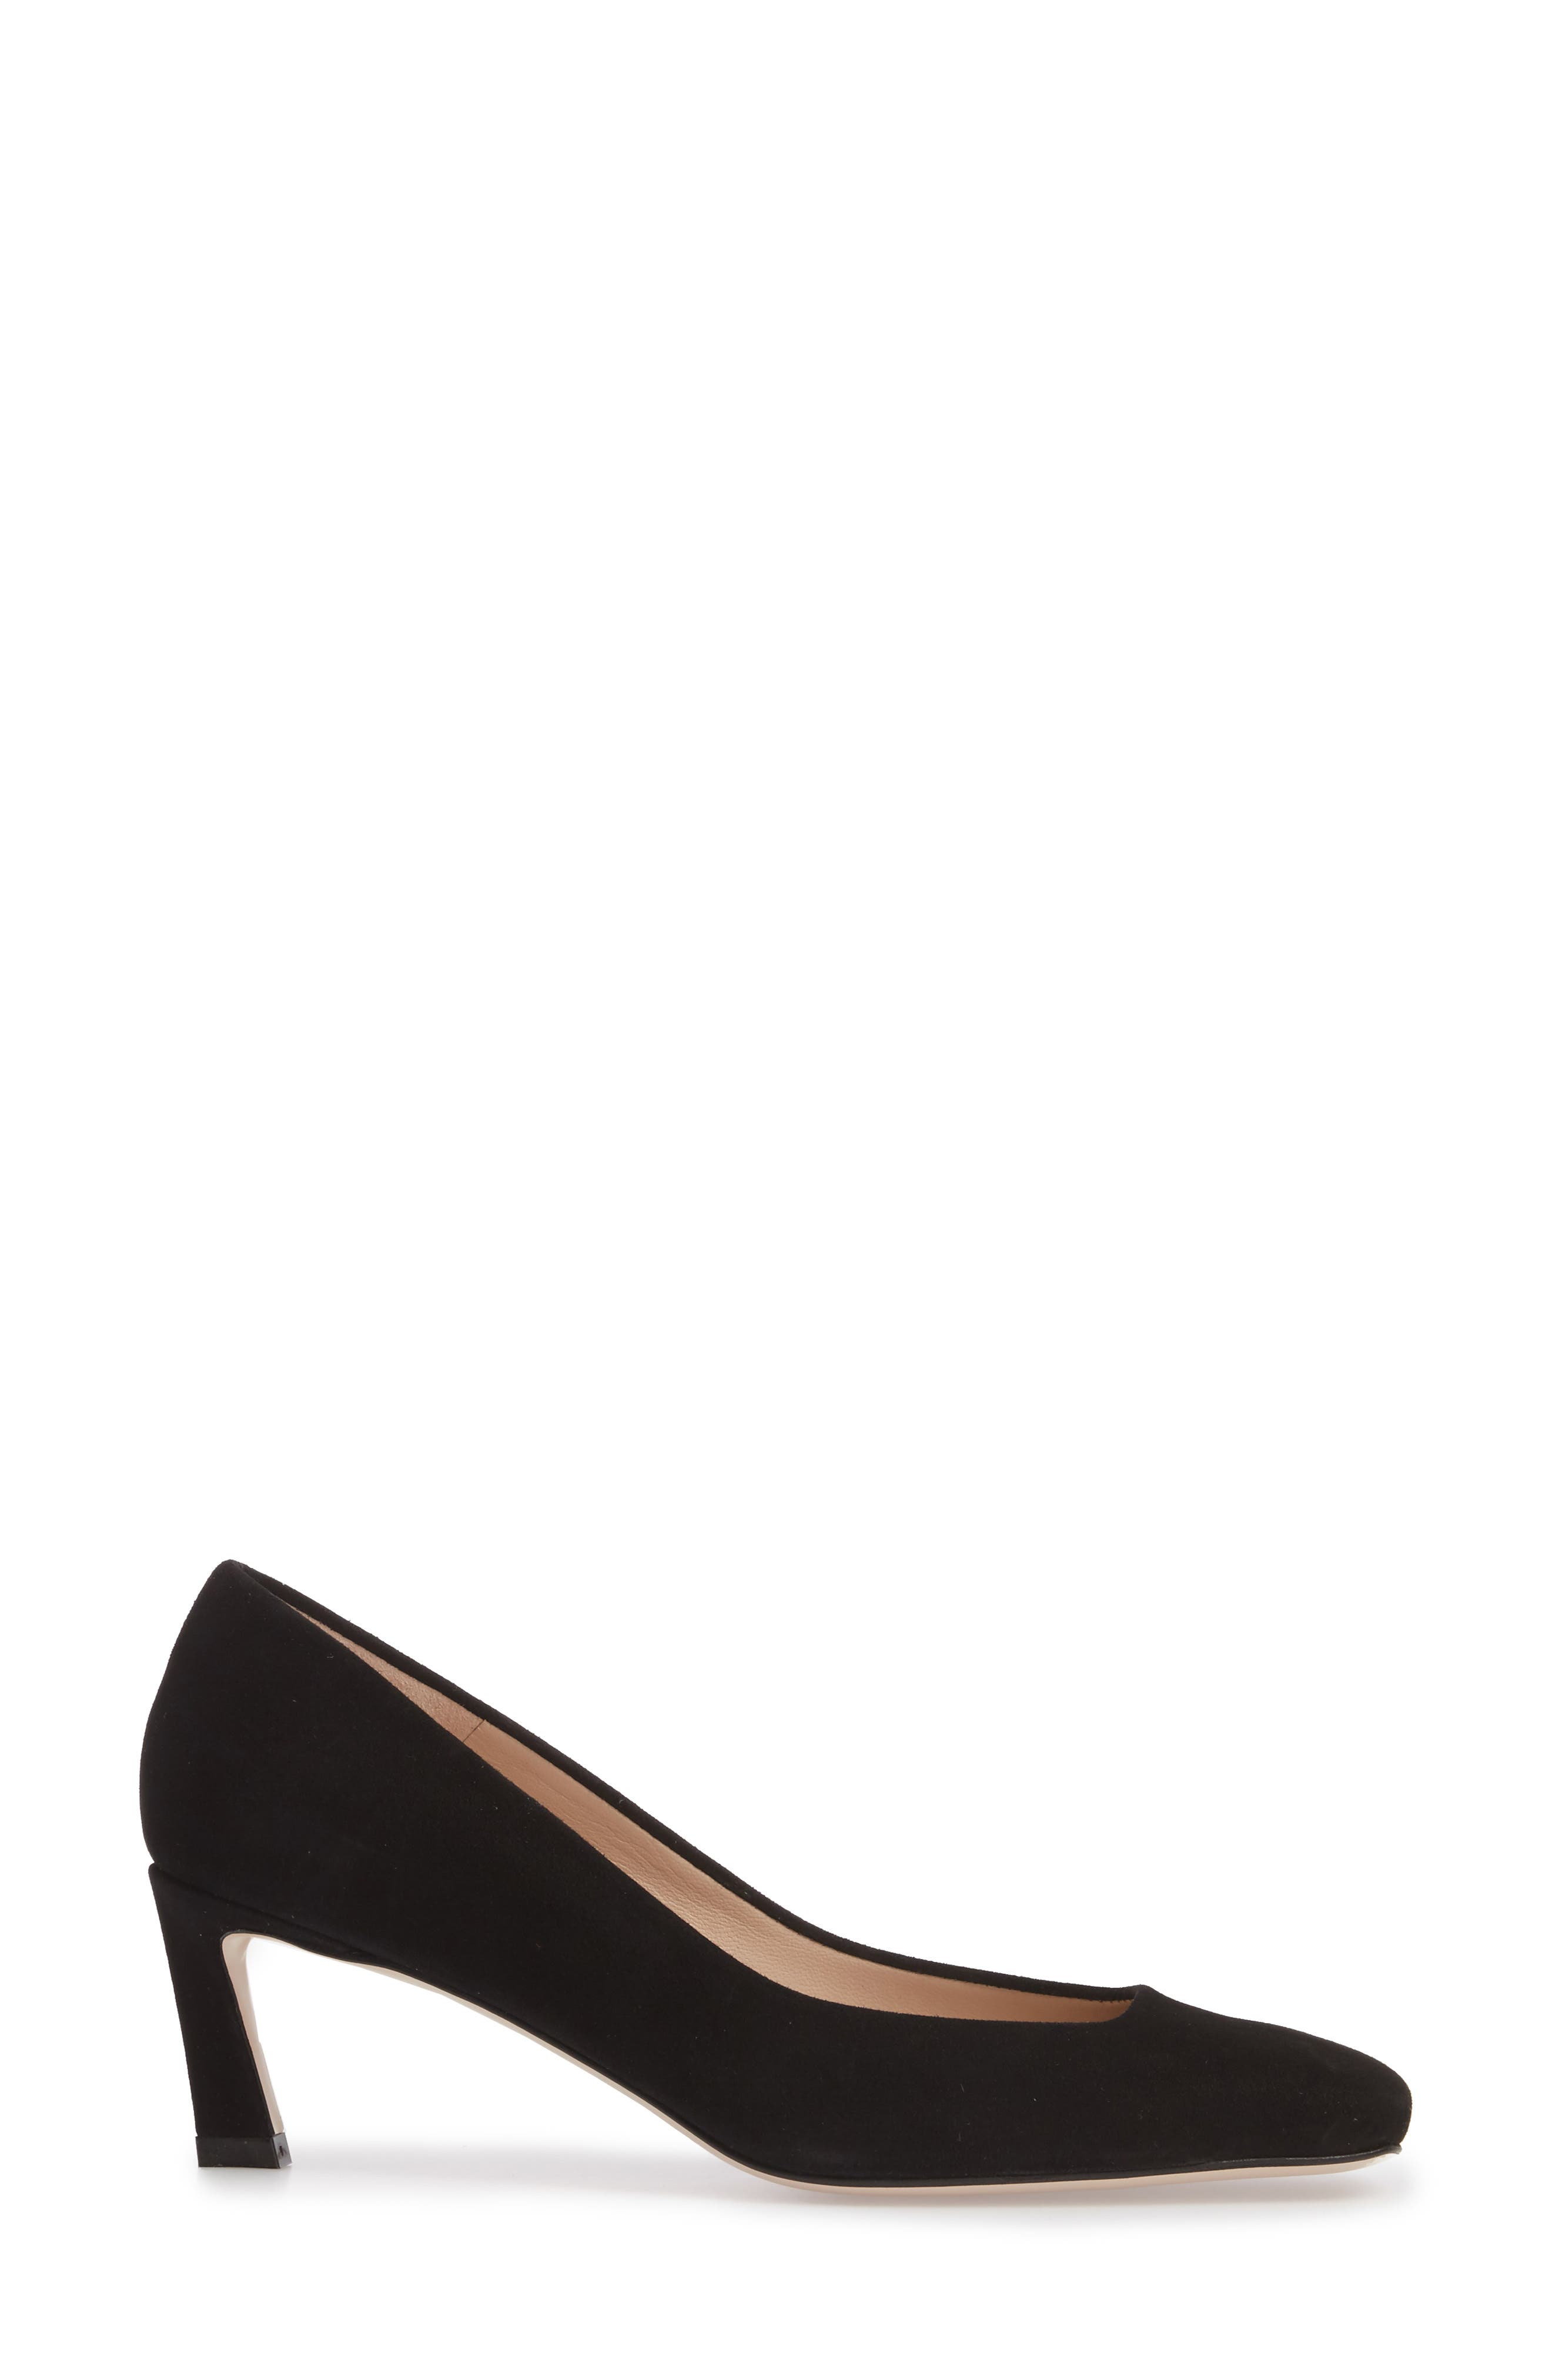 Chelsea Square Toe Pump,                             Alternate thumbnail 3, color,                             006